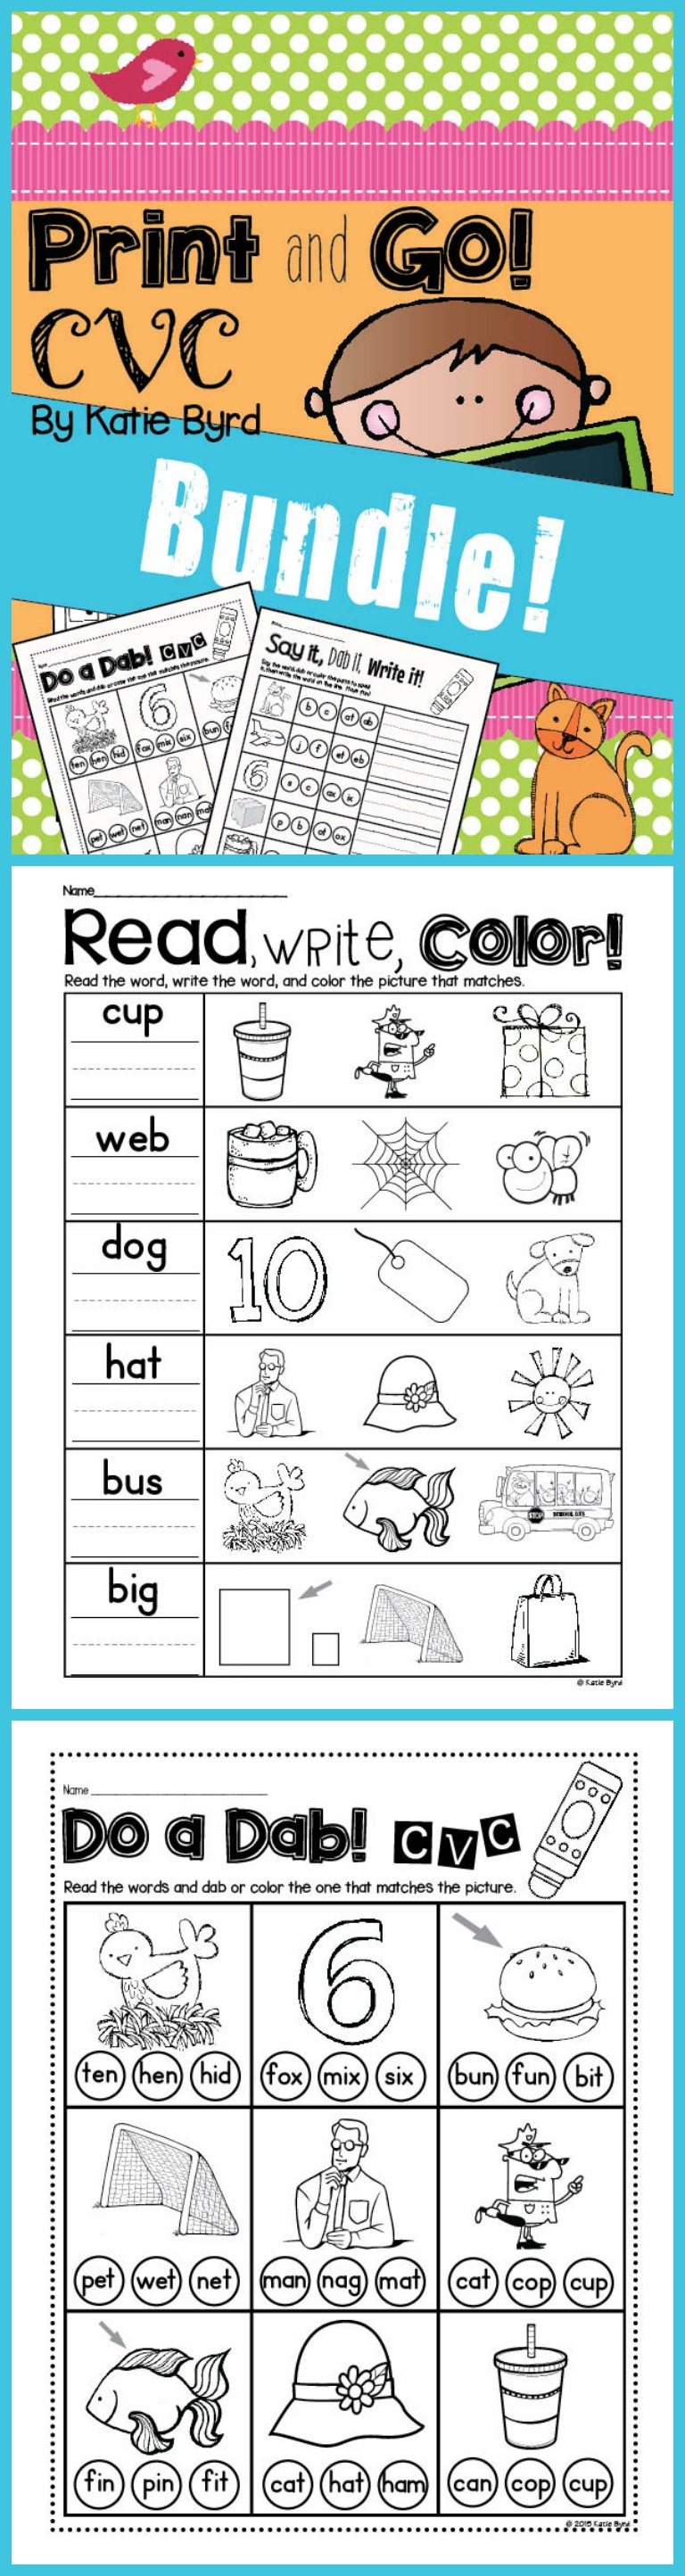 Print page color word 2010 - Print And Go Bundle Cvc Word Work And Literacy Practice No Prep